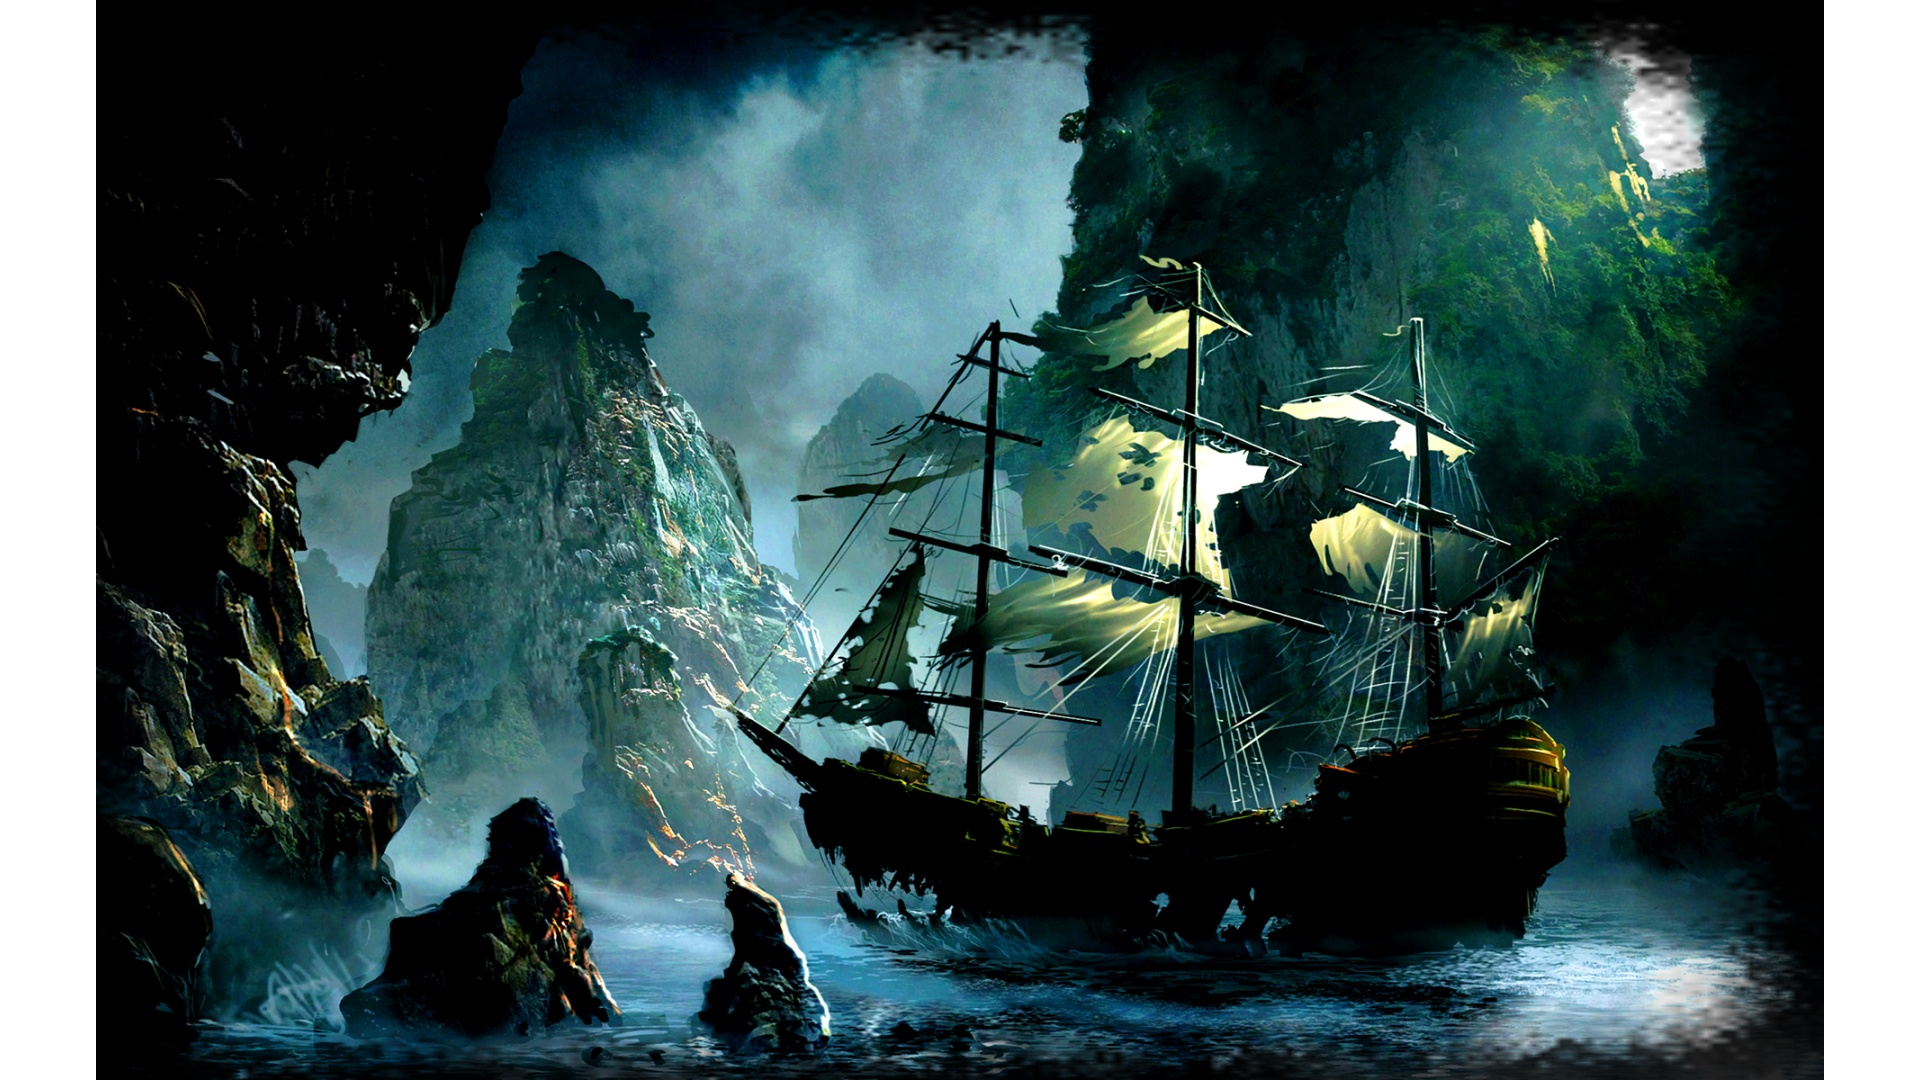 Pictures Ship In Pirates Of The Caribbean 4 Wallpapers Hd 1920x1080